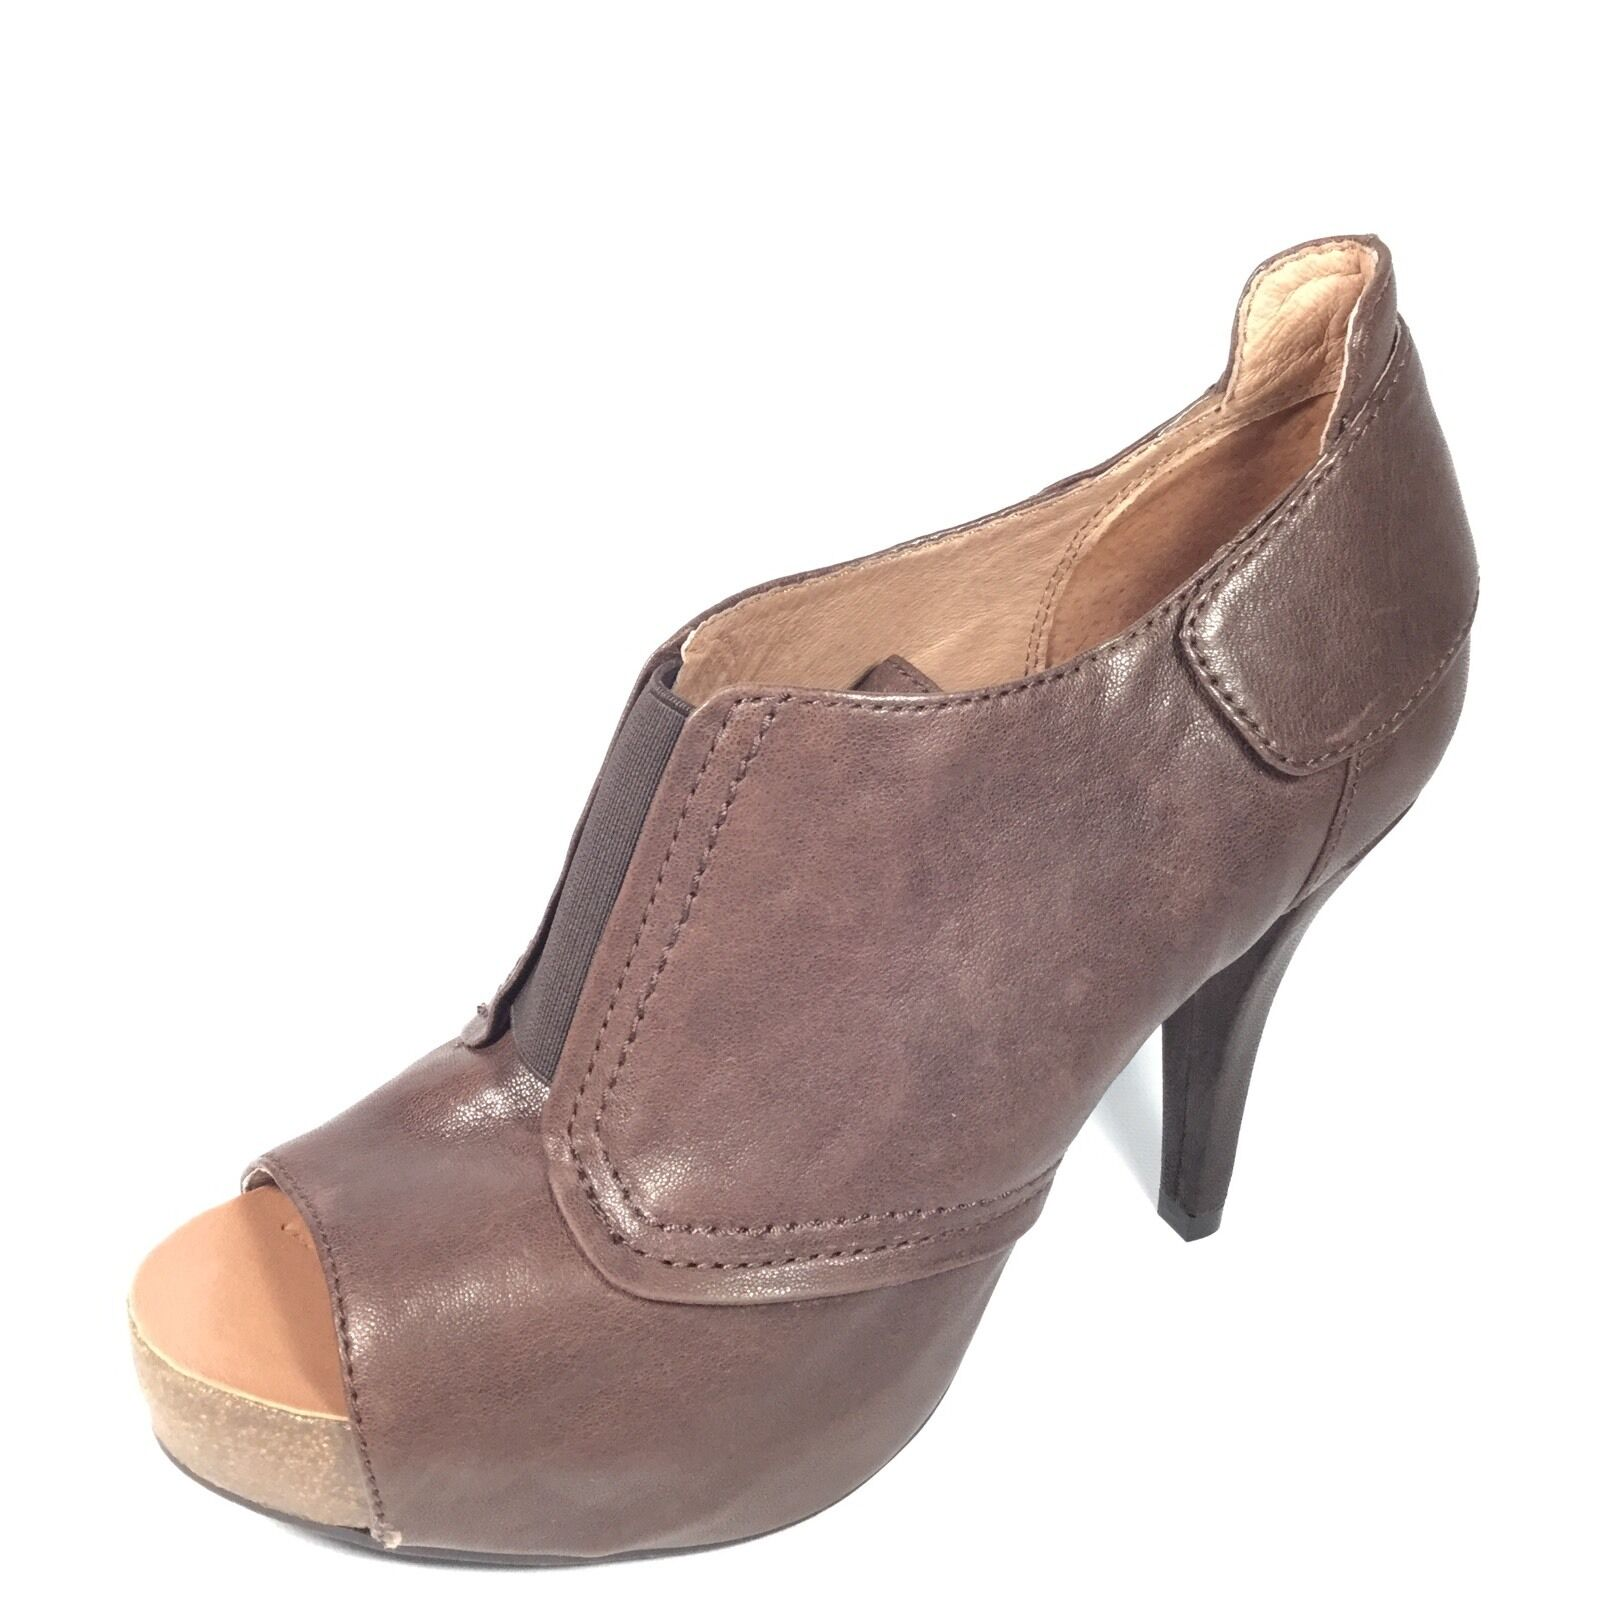 Vince Camuto PERNOT Women's Size 8.5 M M M Brown Leather Open Toe Heels Booties. 798441